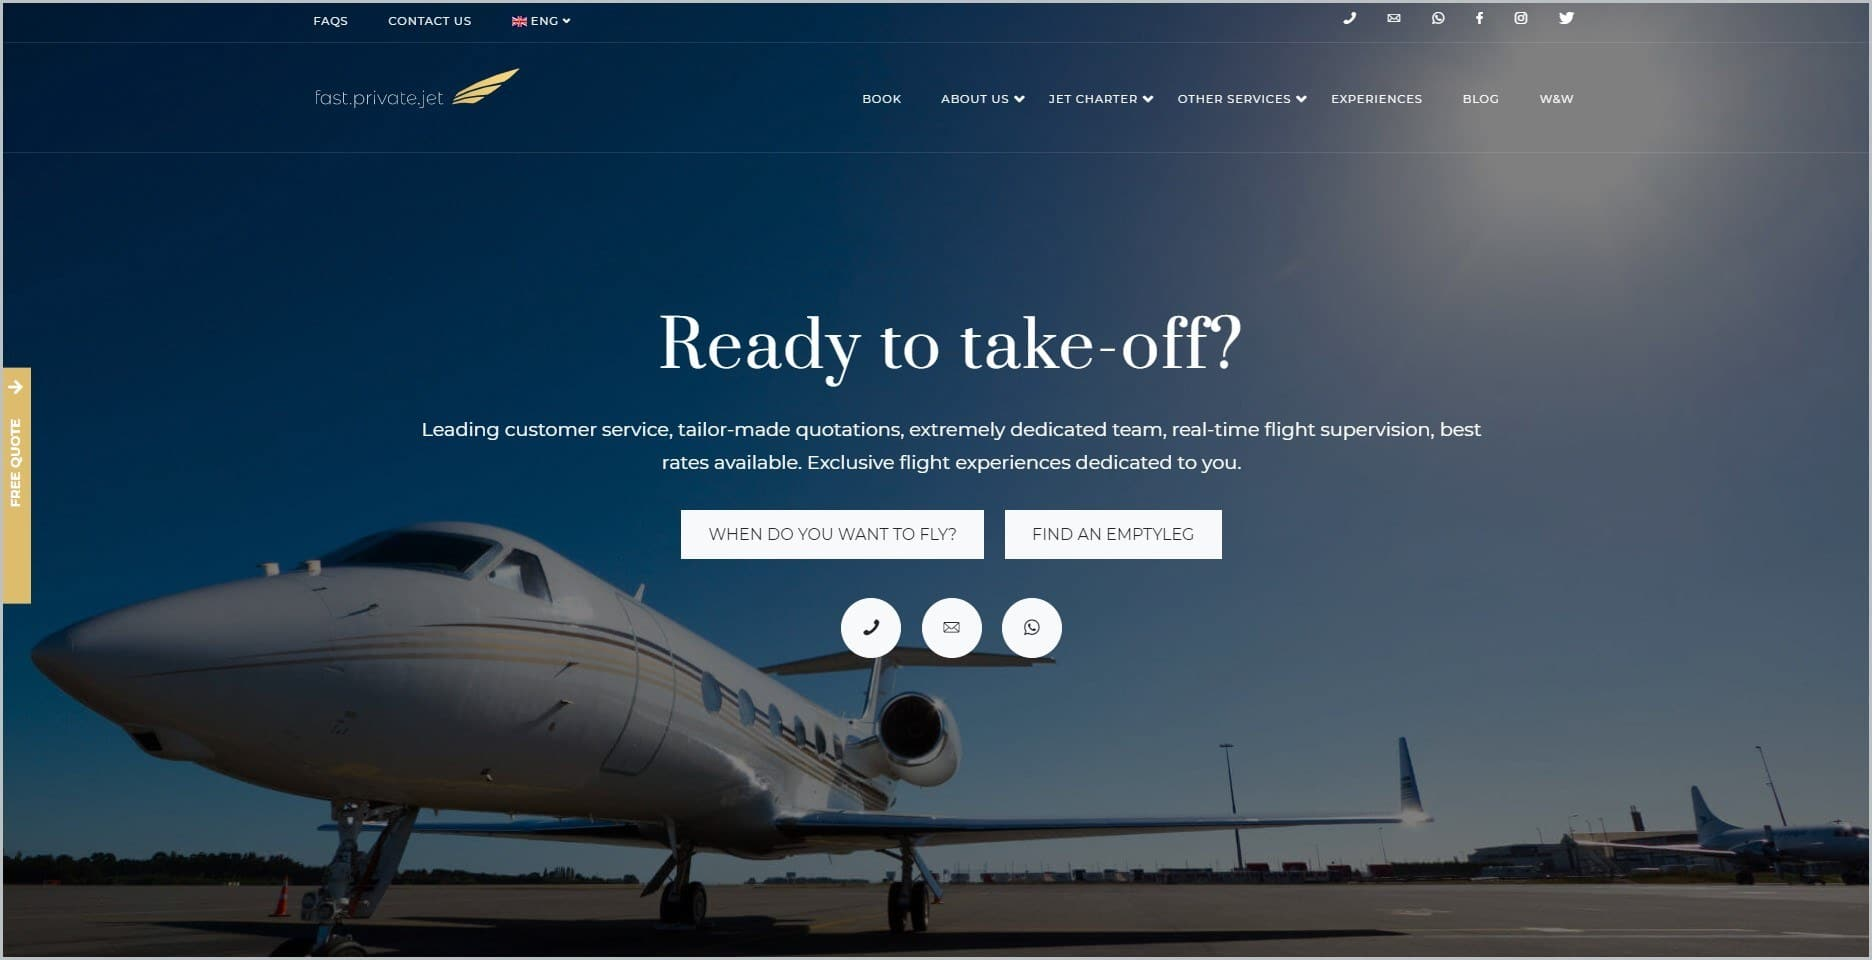 screenshot of Fast Private Jet homepage with blue header bearing the website's name and main navigation menu, it showcases a picture of an aircraft